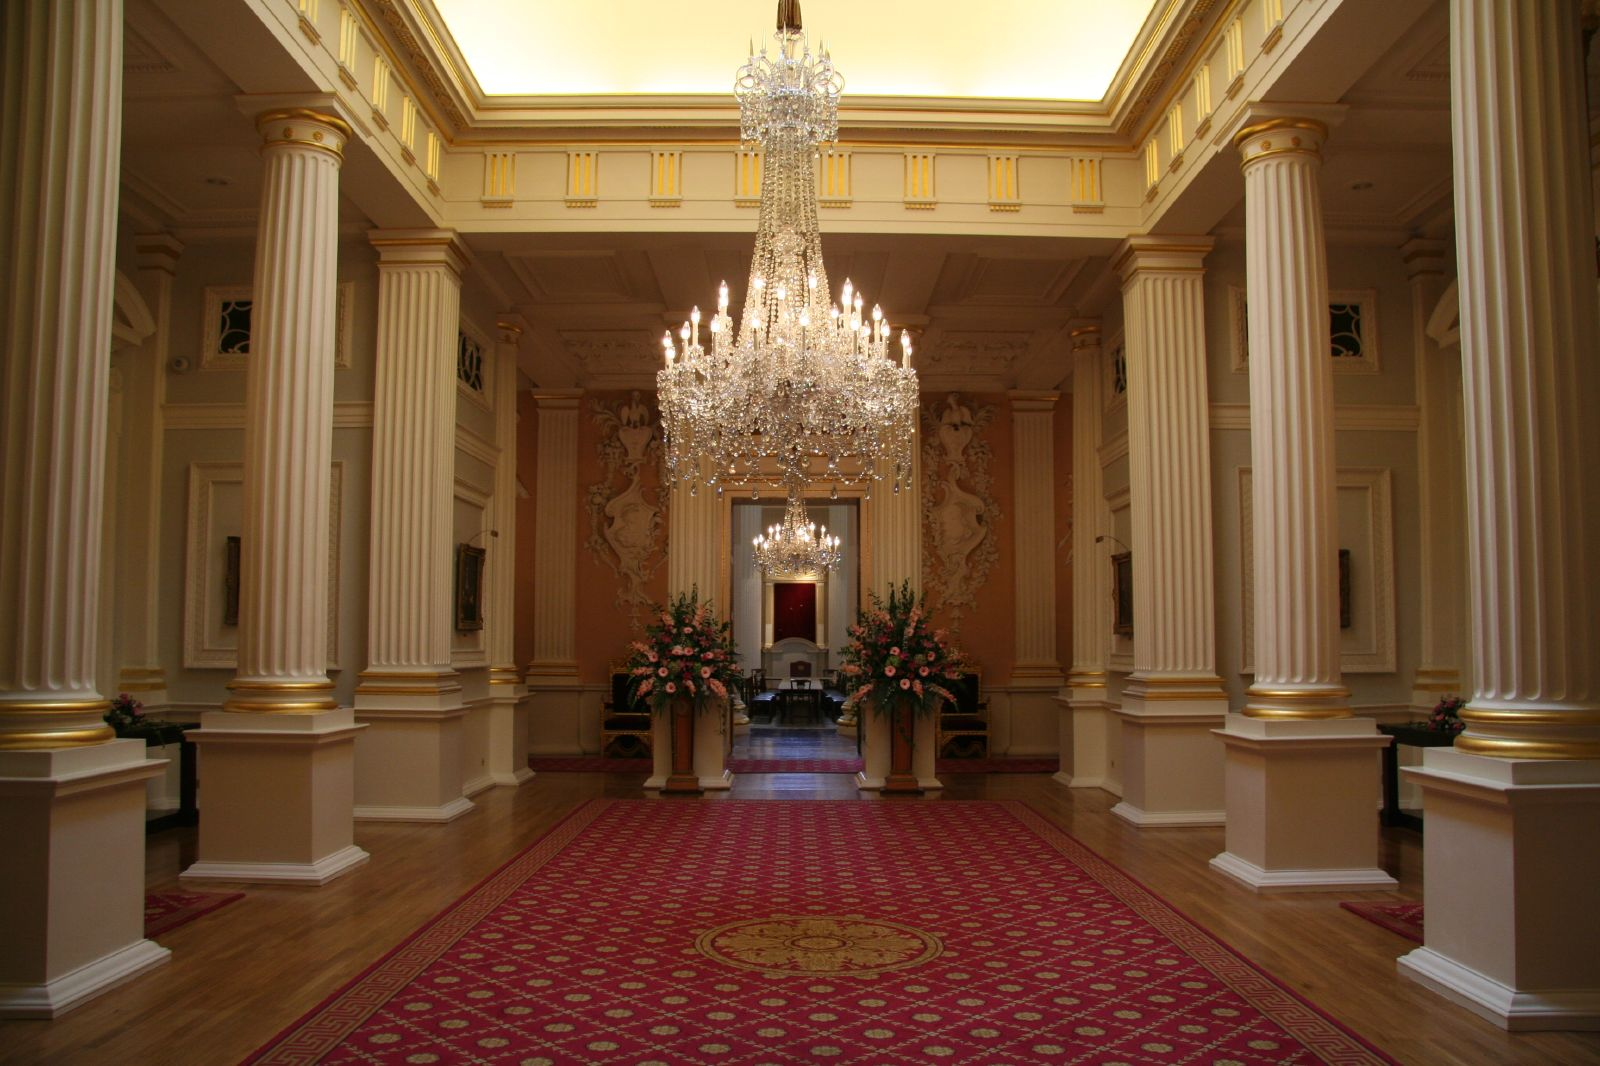 File mansion house interior 1398377700 jpg wikimedia commons - Interiour of house ...